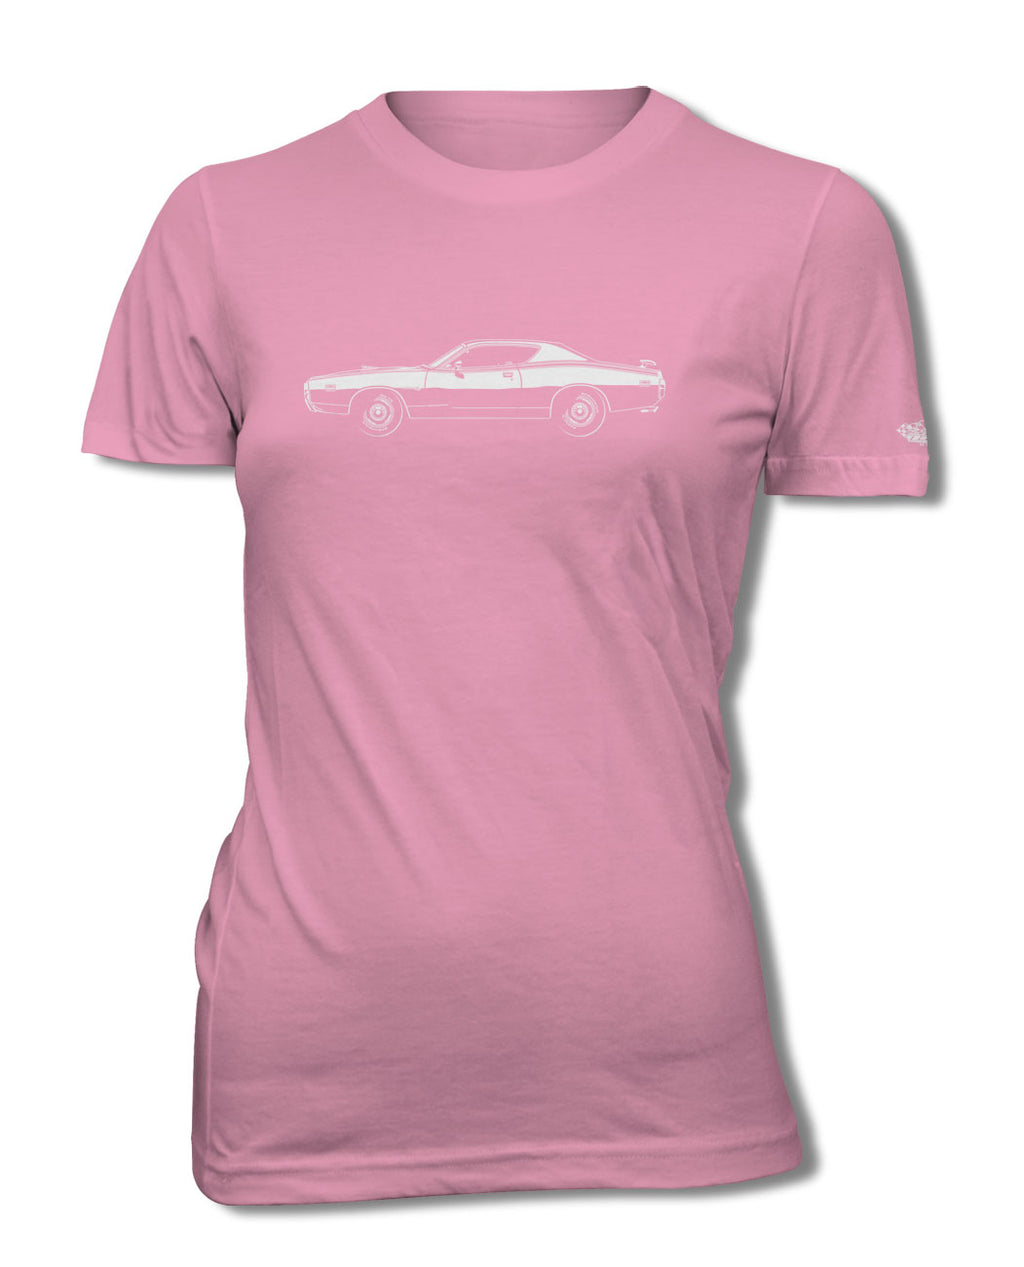 1971 Dodge Charger Super Bee Coupe T-Shirt - Women - Side View